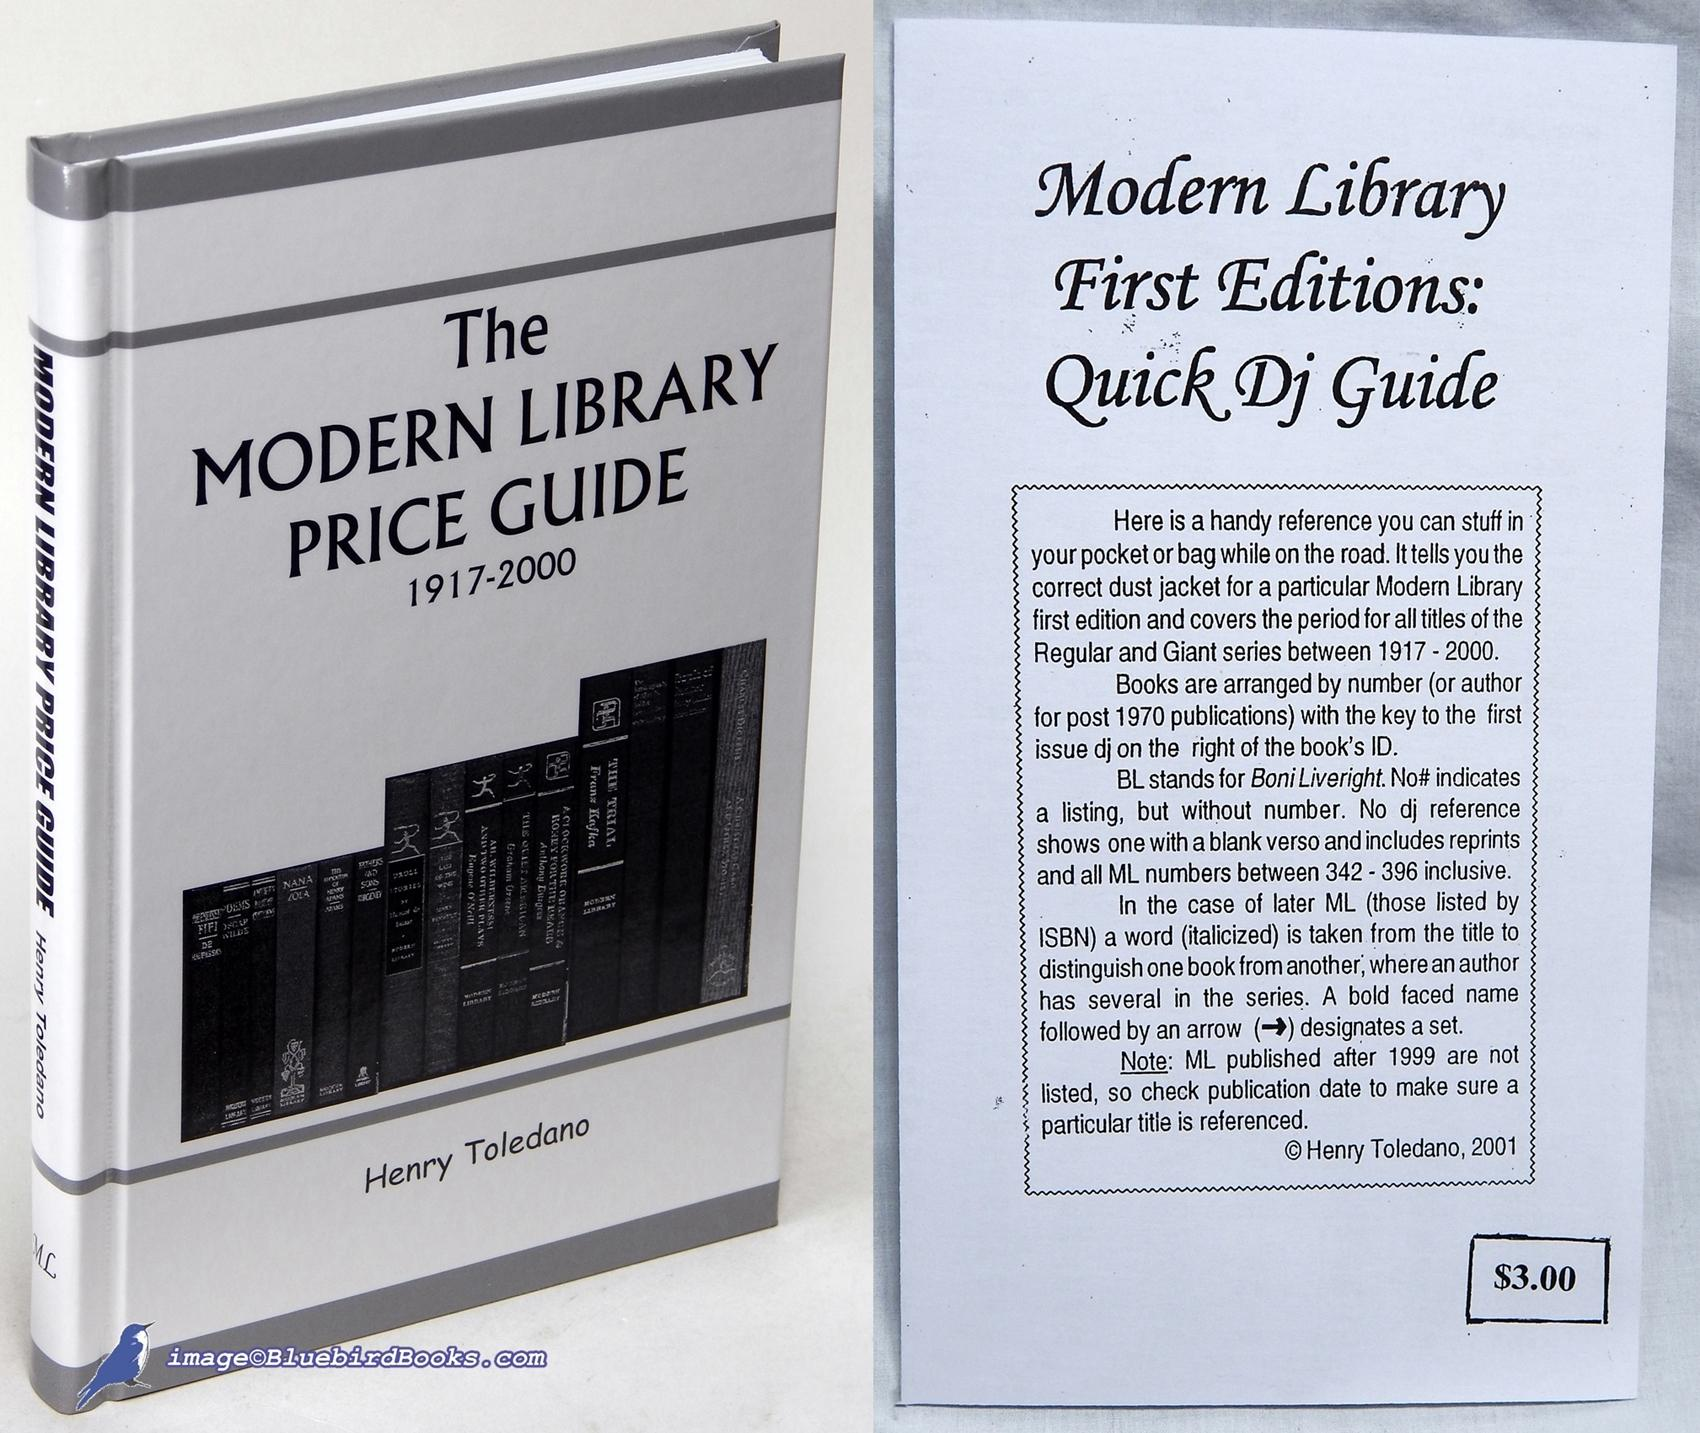 Henry toledano modern library price guide signed abebooks.